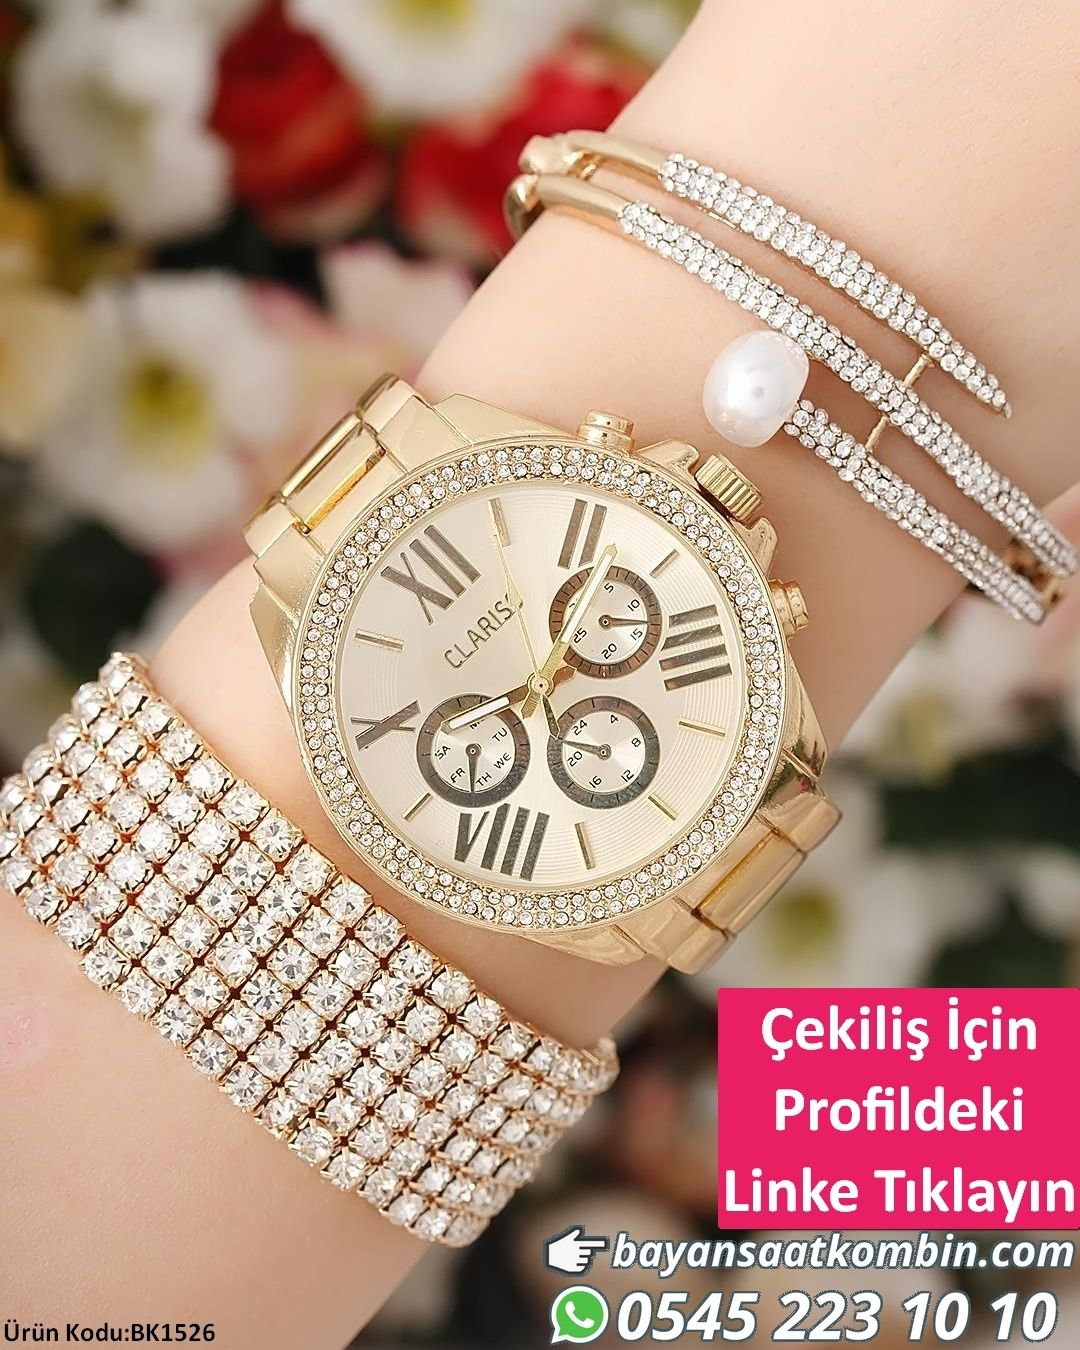 Saat Bileklik Kombini Urun Kodu Bk1526 Resimde Kac Adet Bileklik Varsa Saat Ile Hepsi Birlikte Gon Latest Women Watches Watches Women Fashion Womens Watches